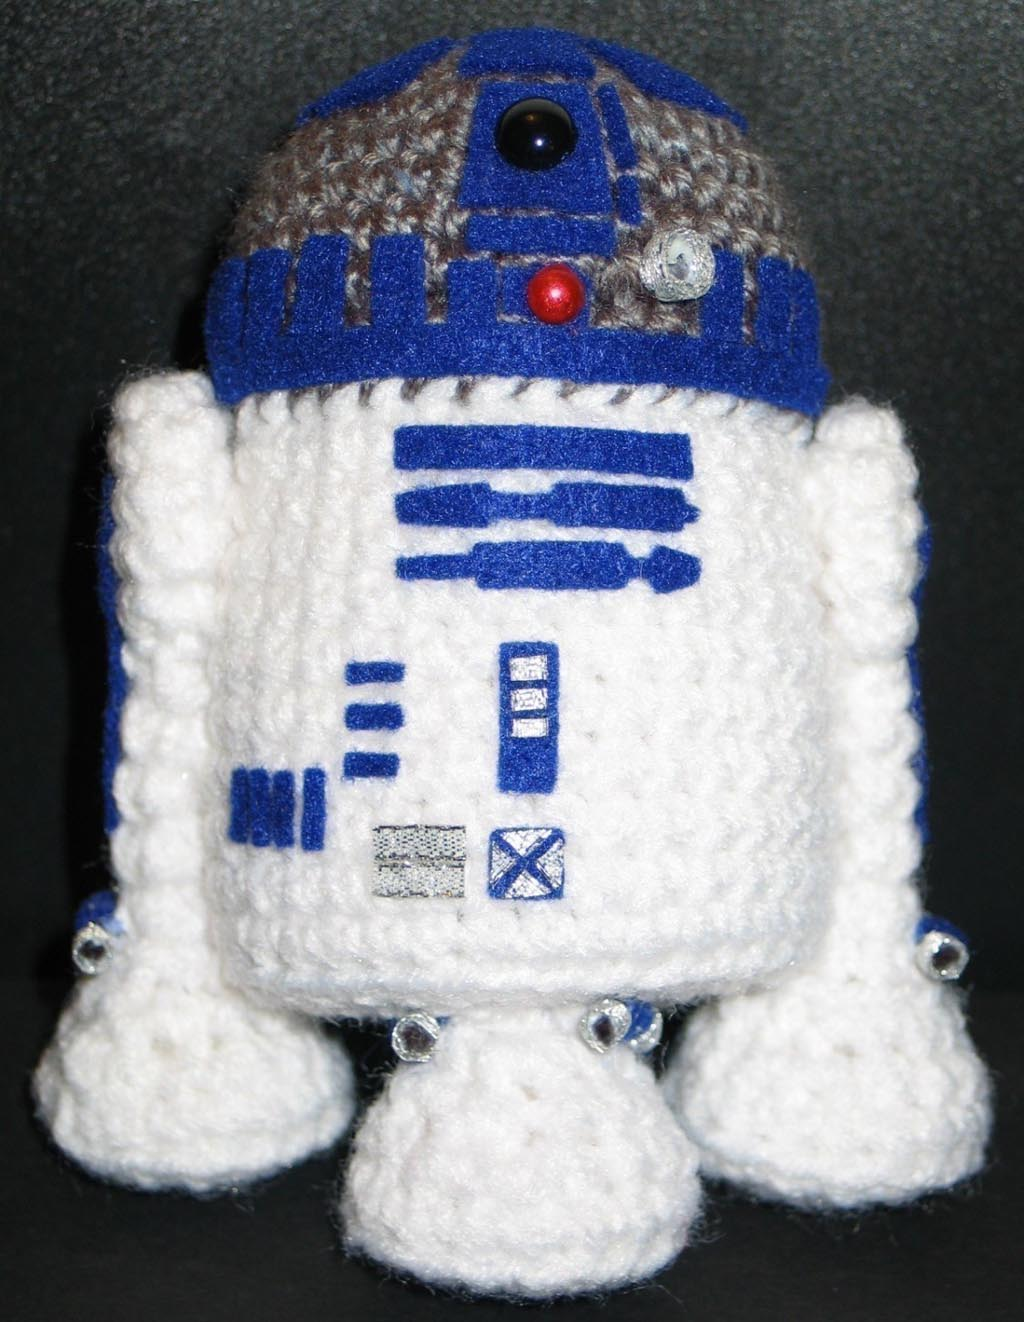 Free Star Wars Crochet Amigurumi Patterns : Free Crochet Hat Pattern For Frozen Elsa Party ...